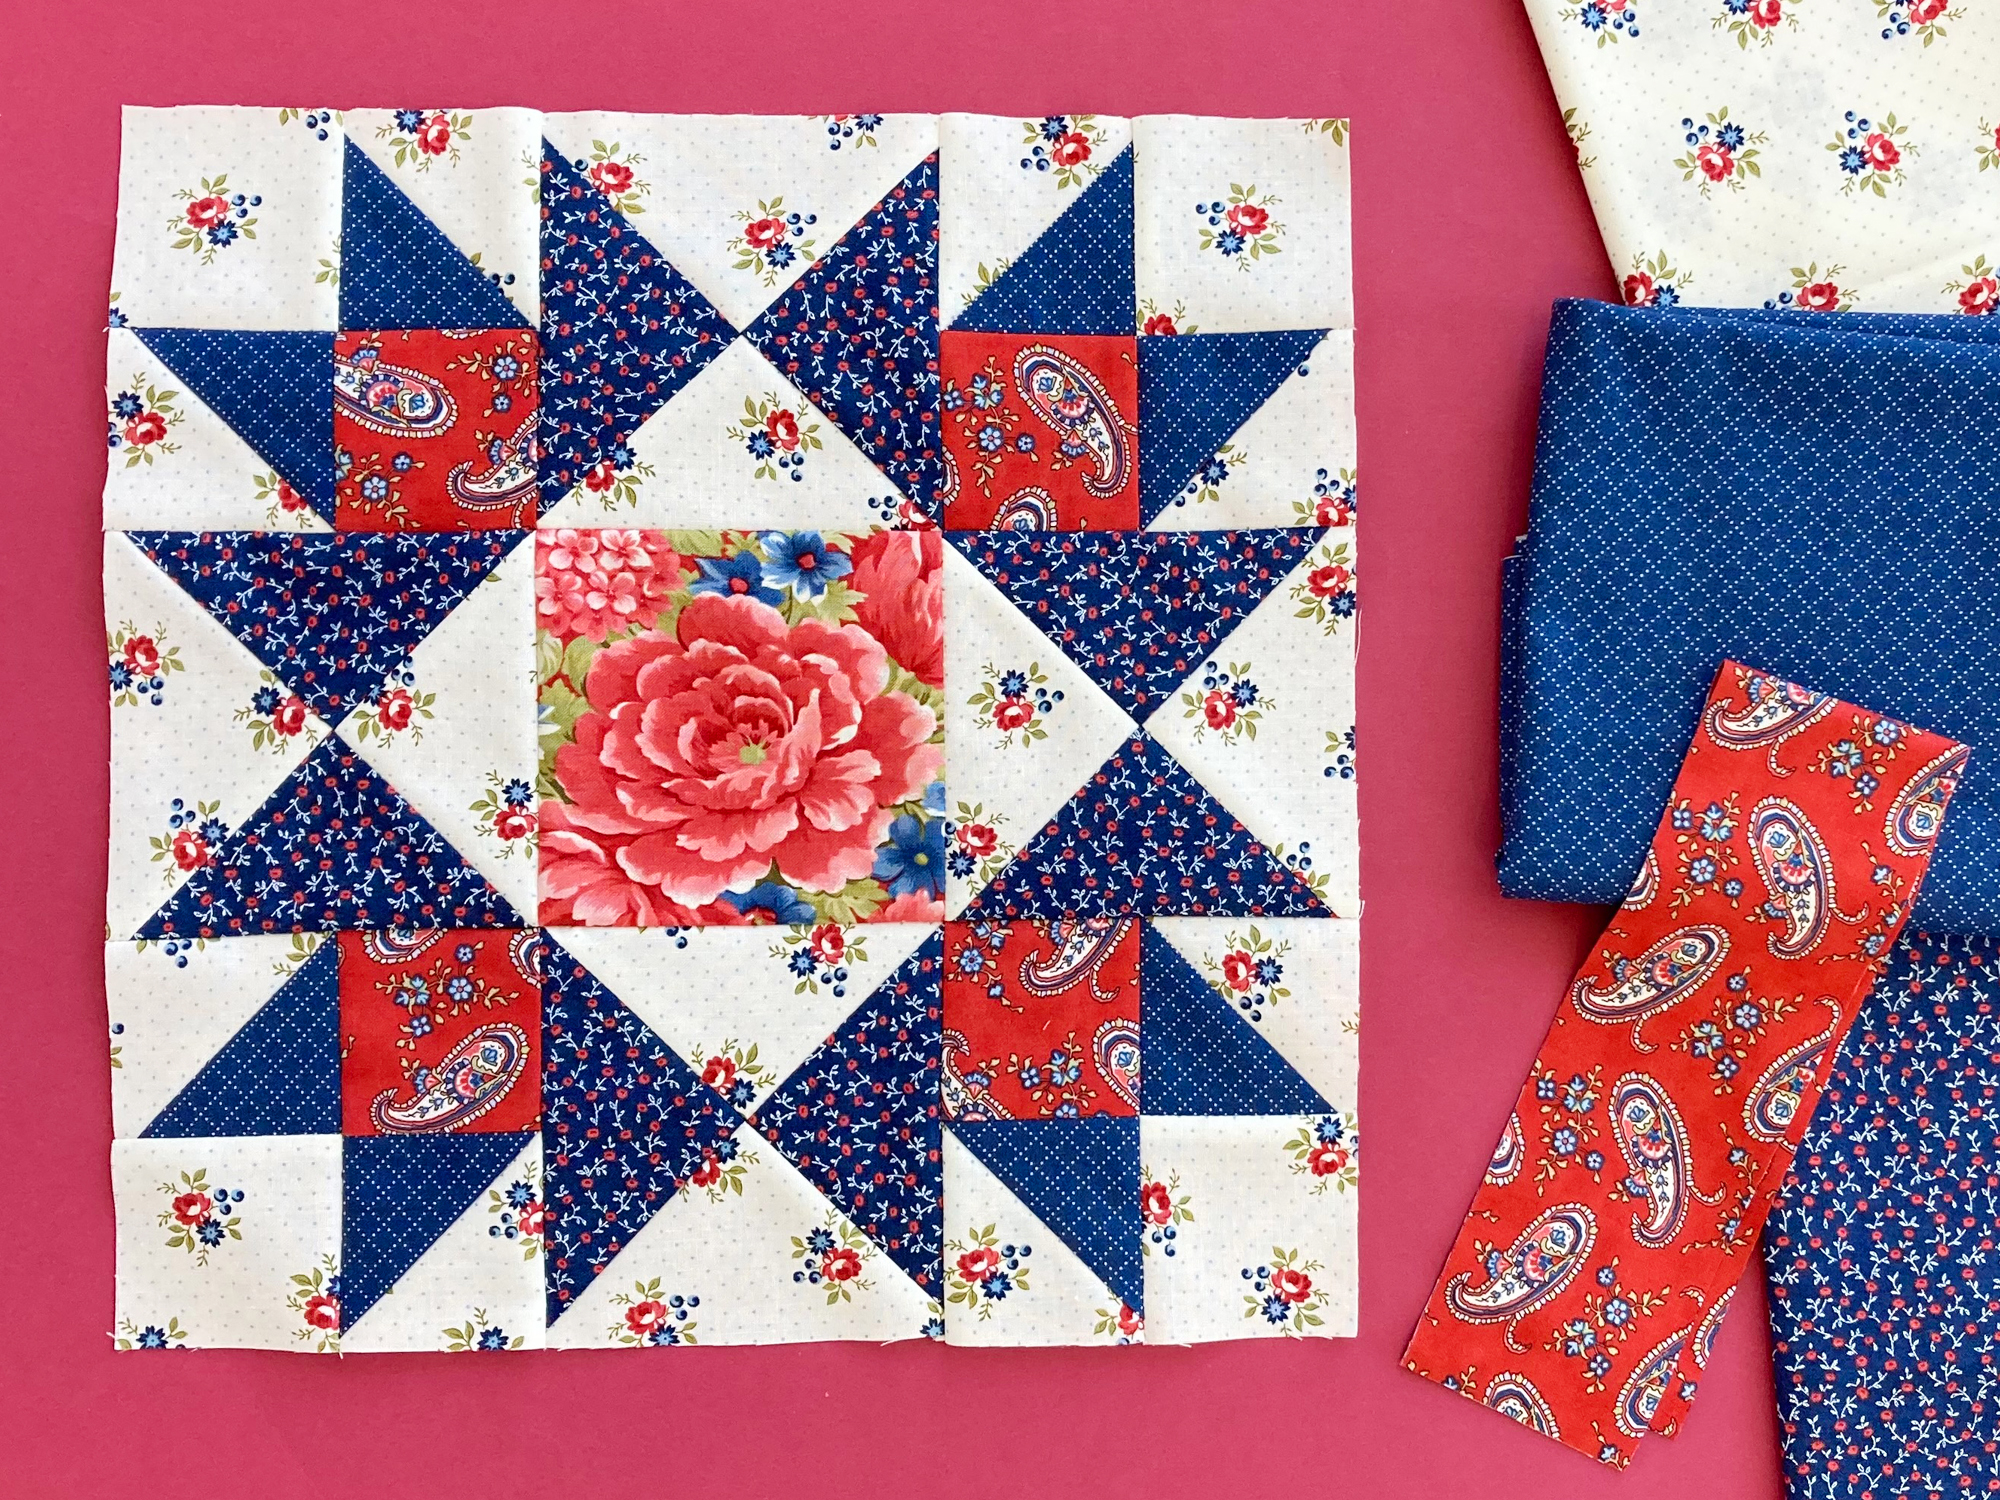 Bright New Day Block 8 made with red, white and blue florals and paisley